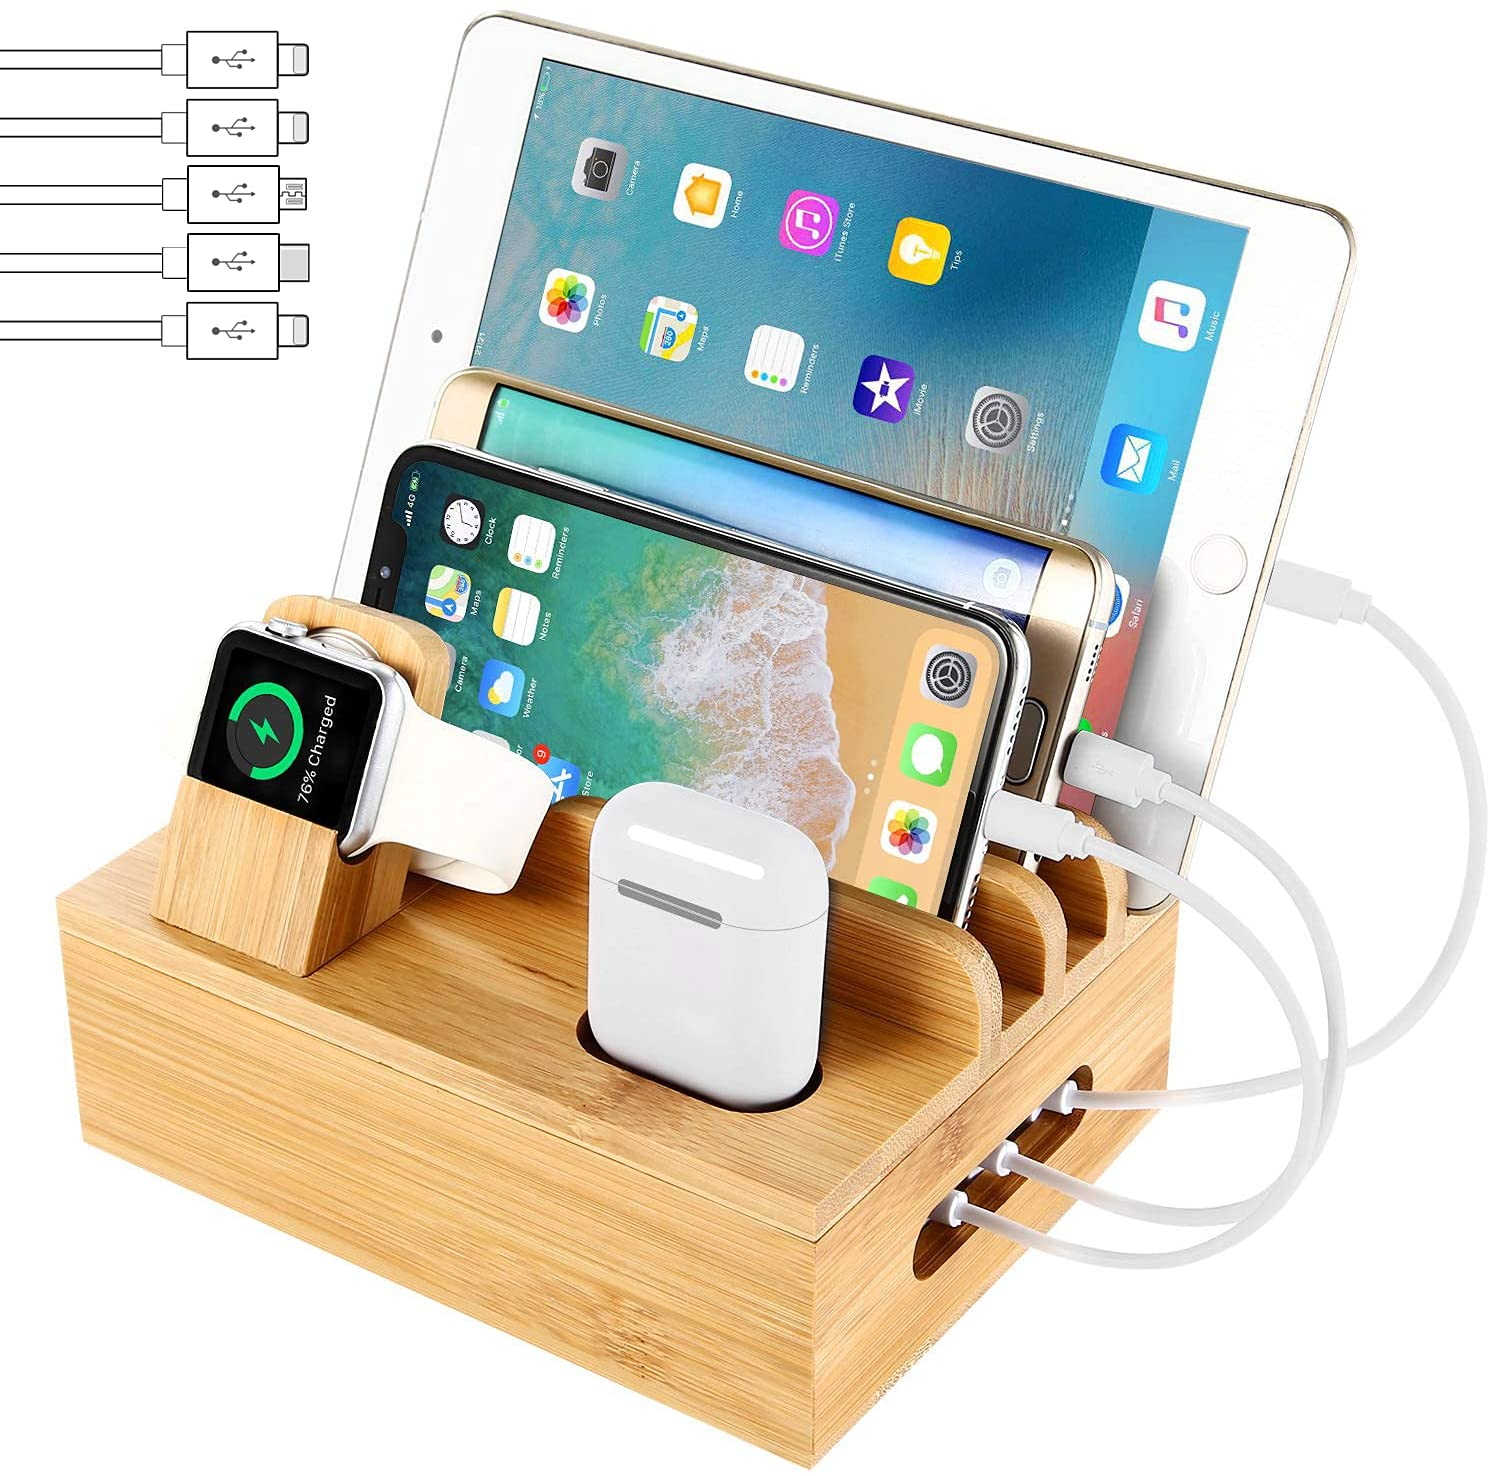 Bamboo Charging Station Dock for 4/5 / 6 Ports USB Charger with 5 Charging Cables Included, Desktop Docking Station Organizer for Cellphone,Smart Watch,Tablet(No Power Supply): Electronics